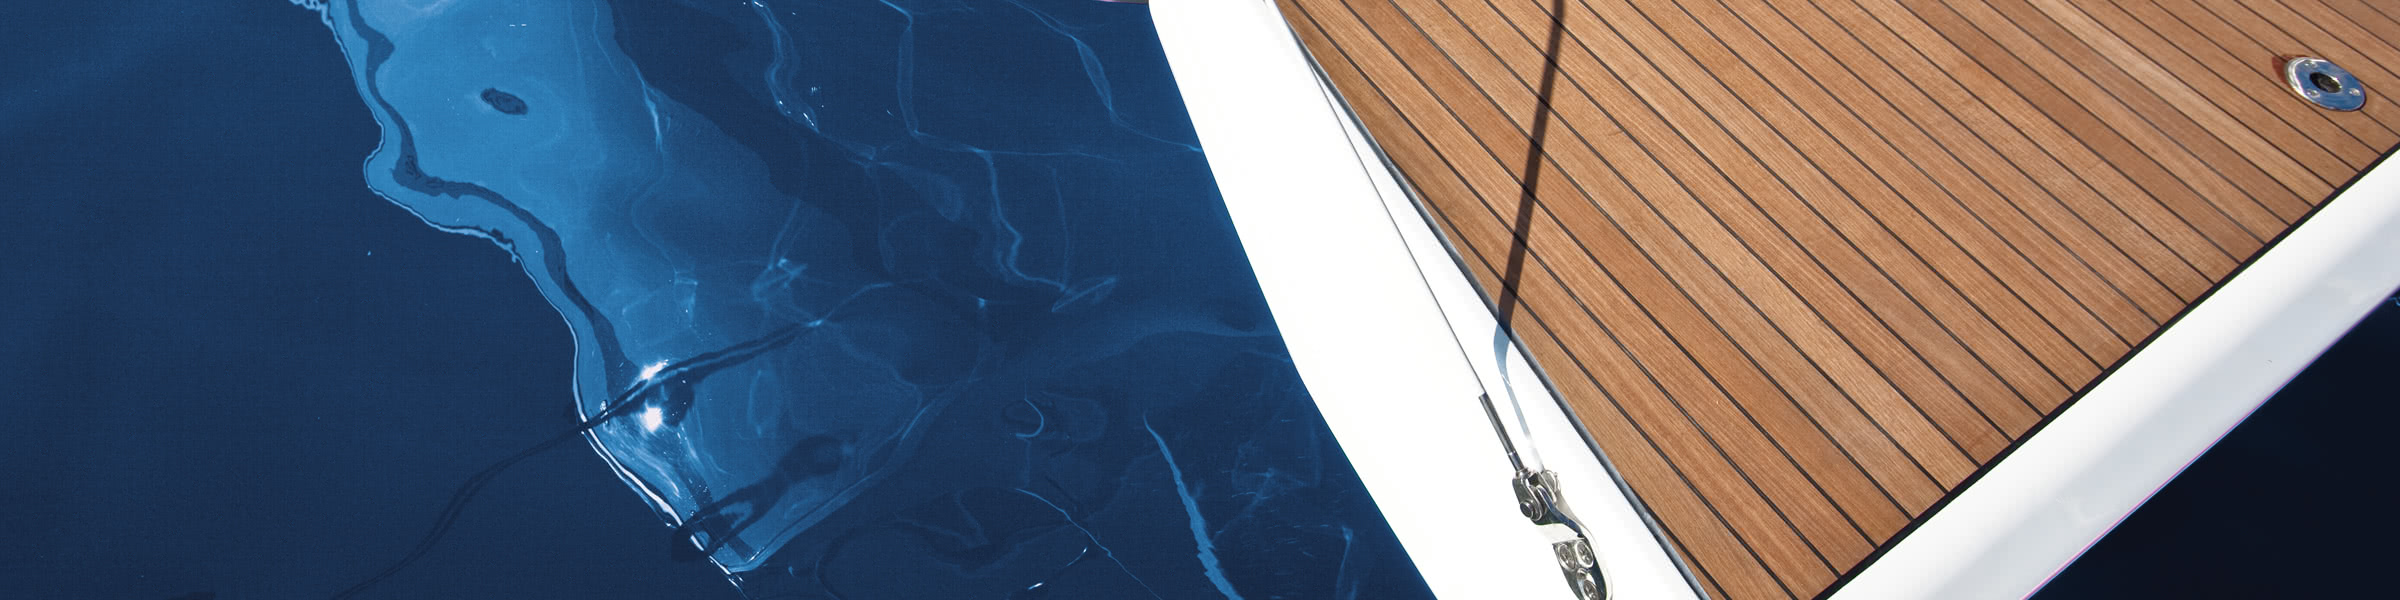 Resistant and non-slip deck coverings